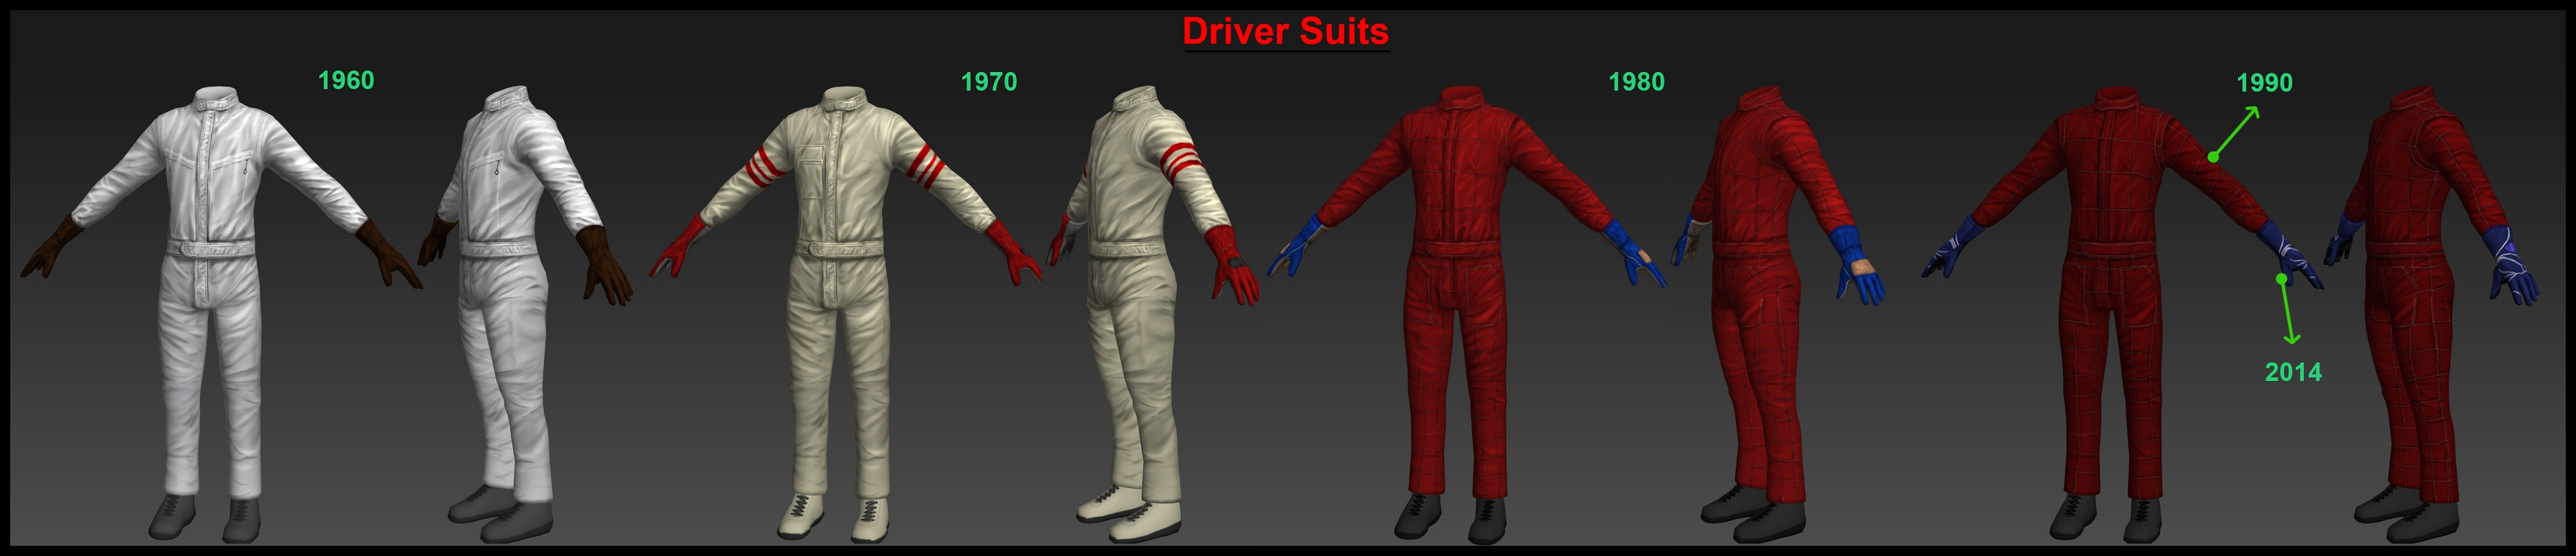 Driver Suits_Screenshot.jpg